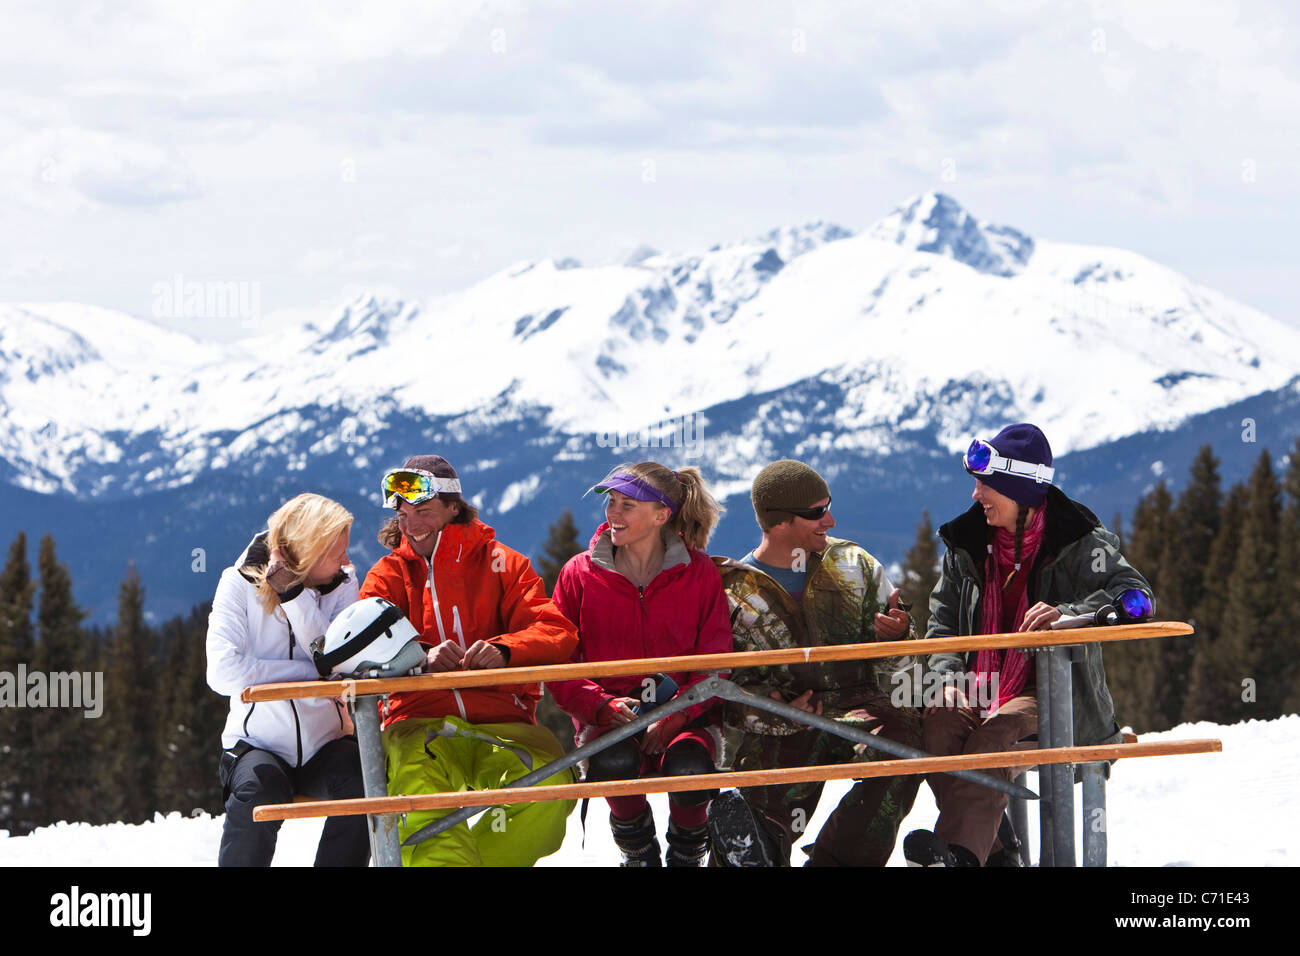 A large group of friends smile and laugh while enjoying a beautiful skiing day in Colorado. - Stock Image